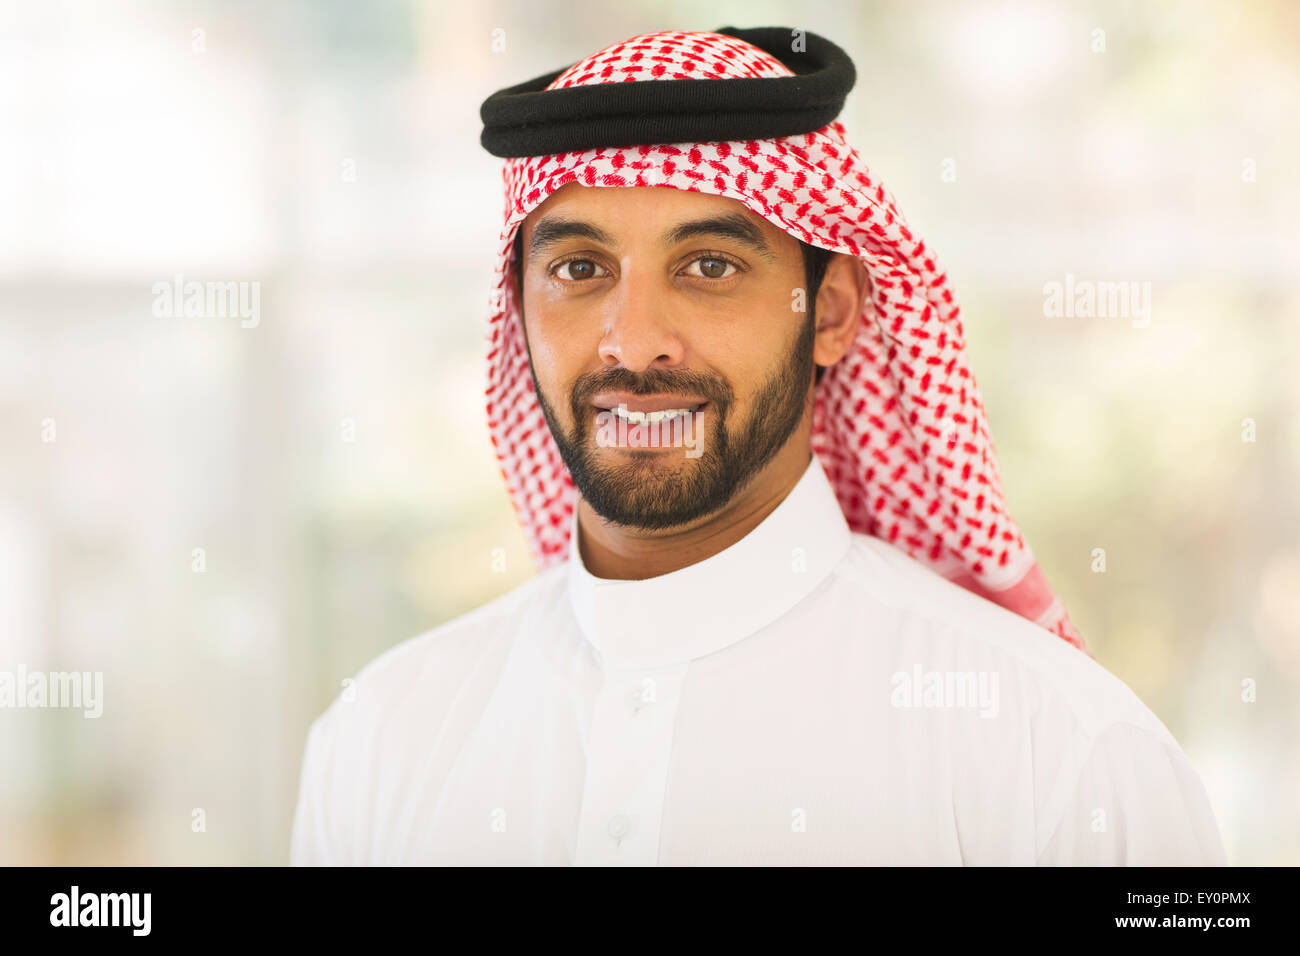 Attractive middle eastern man